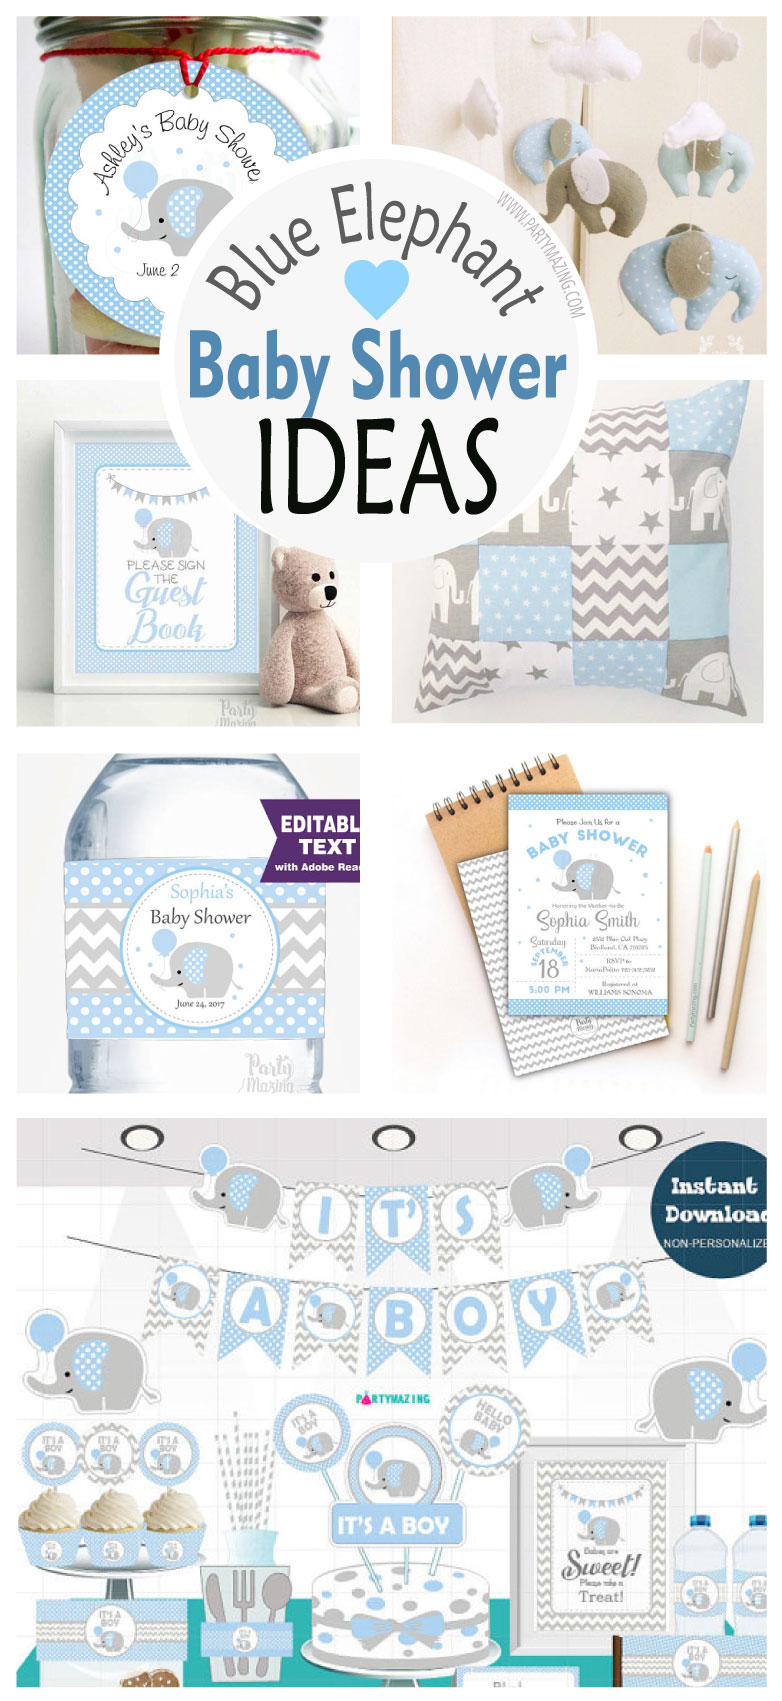 boy ideas decorations excellent elephant blogbeen for ljcbczp shower lovely sorepointrecords baby great